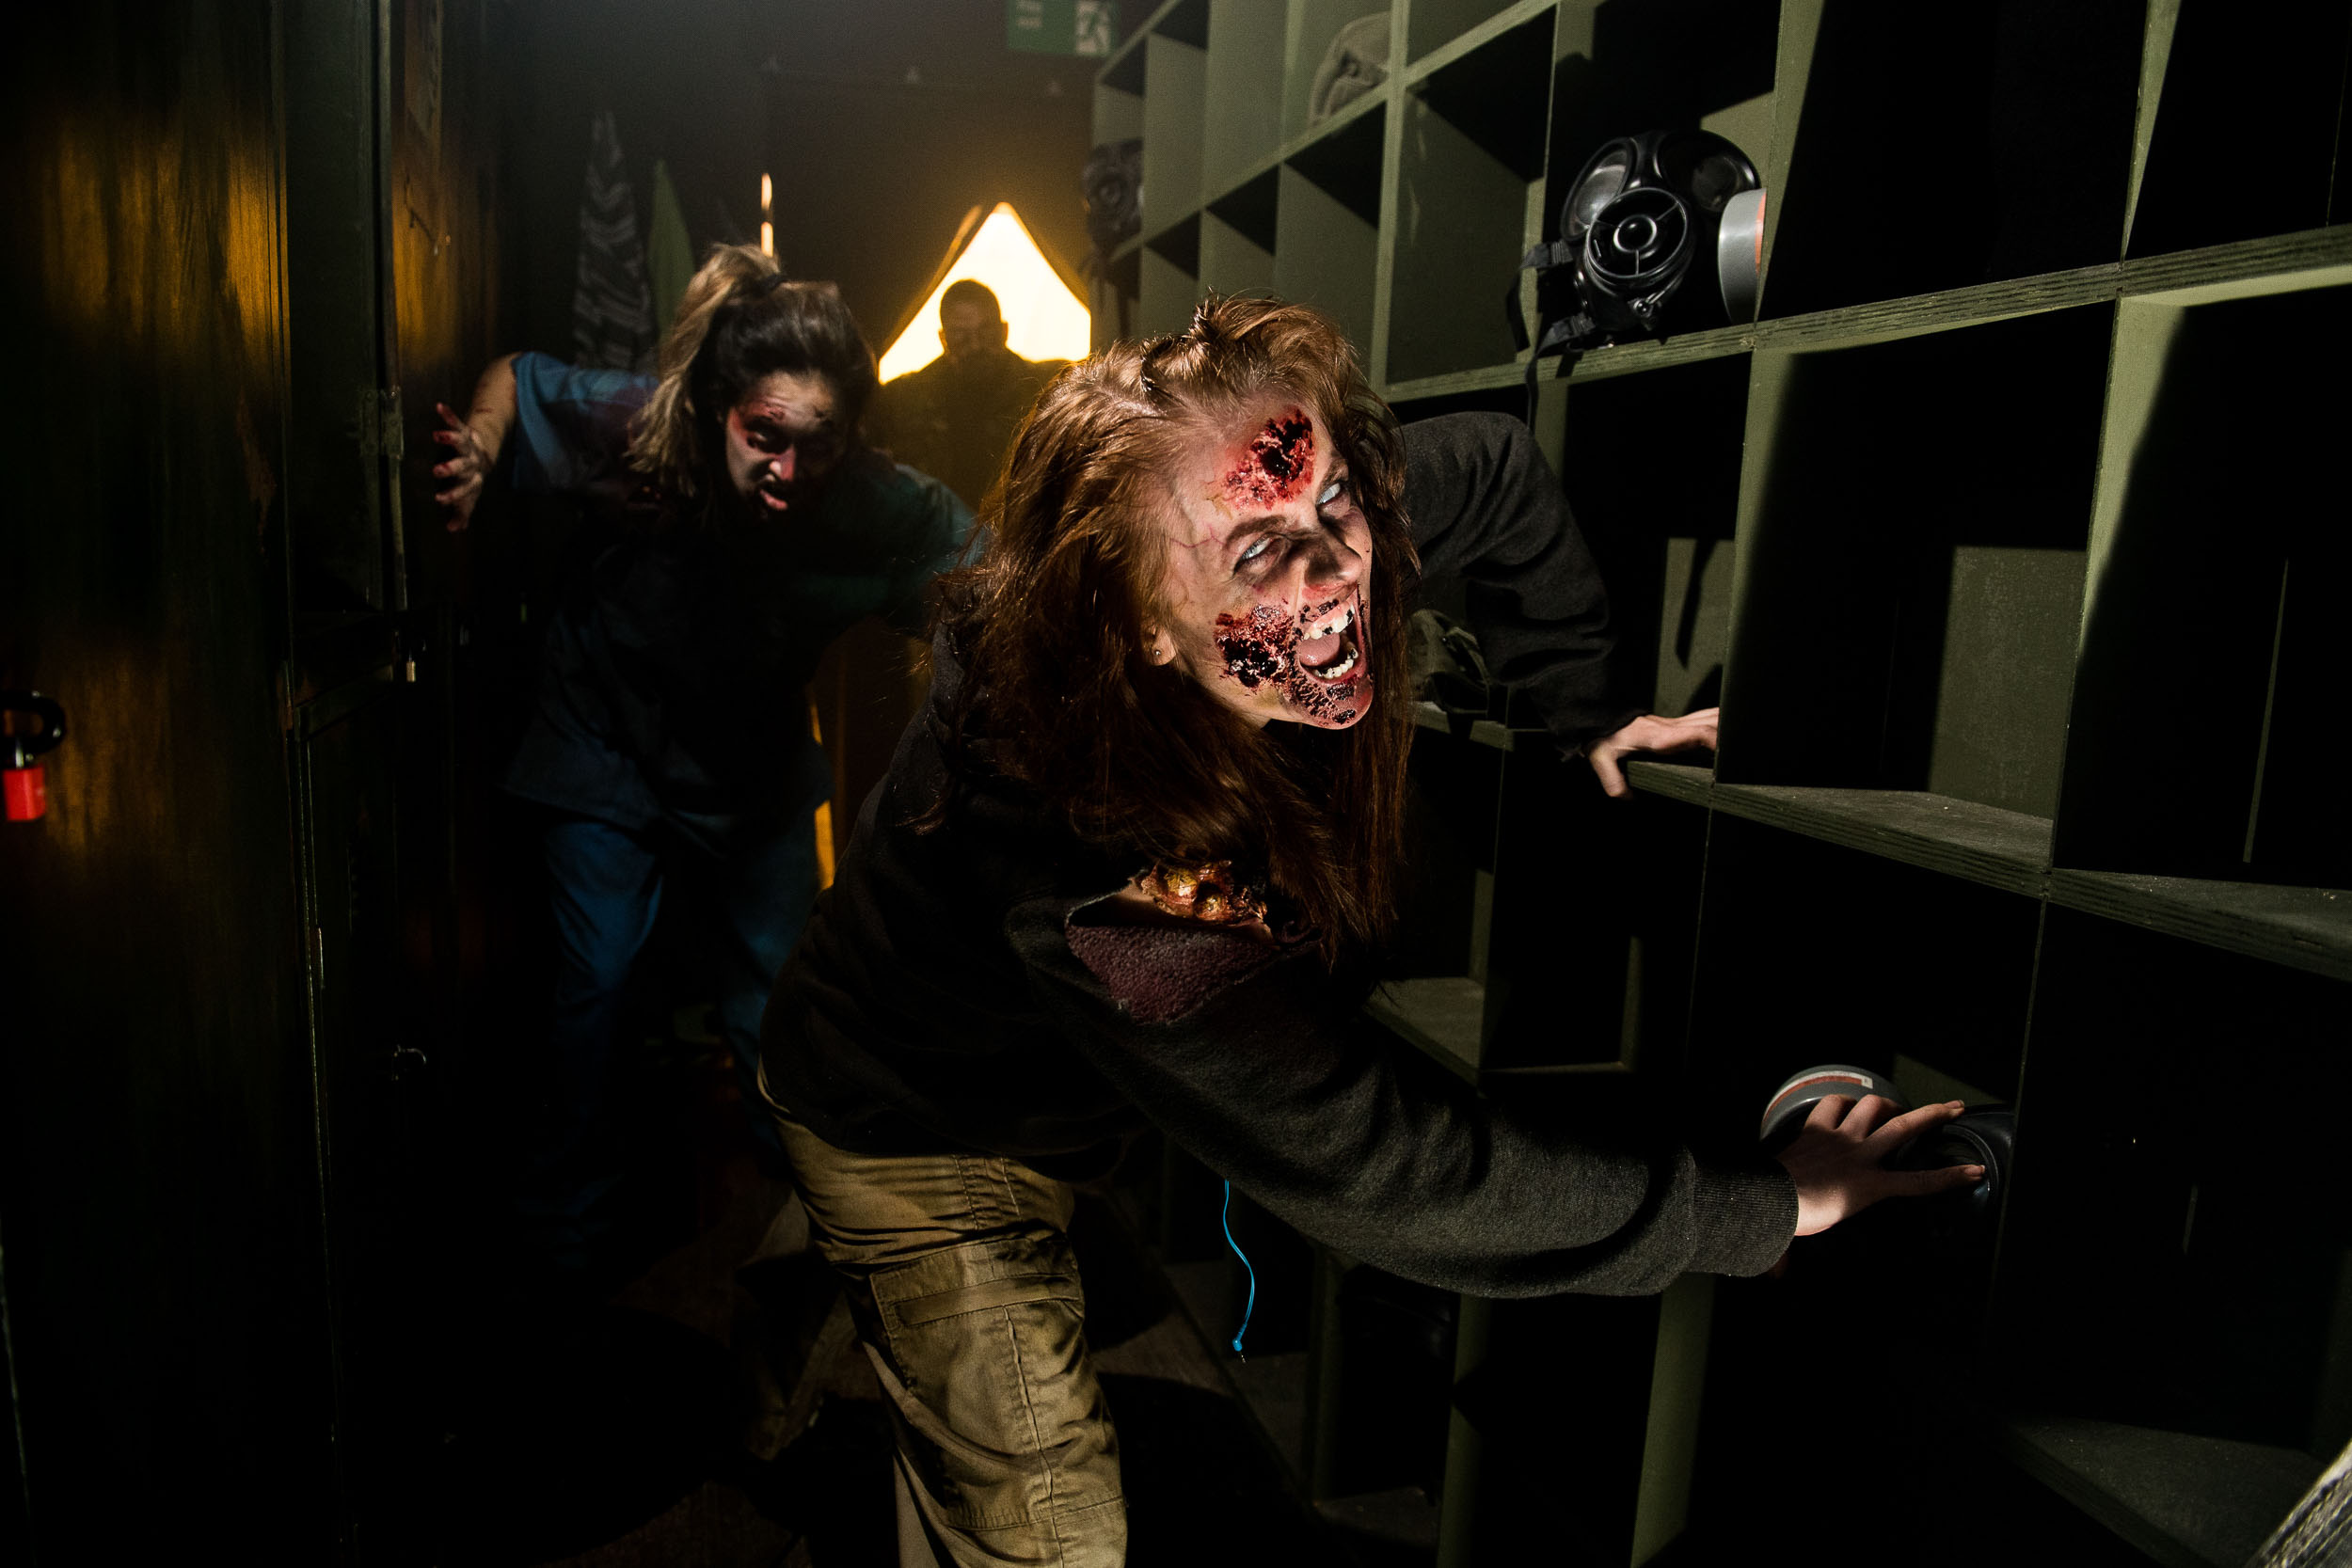 Photographs of Scarefest at Alton Towers.